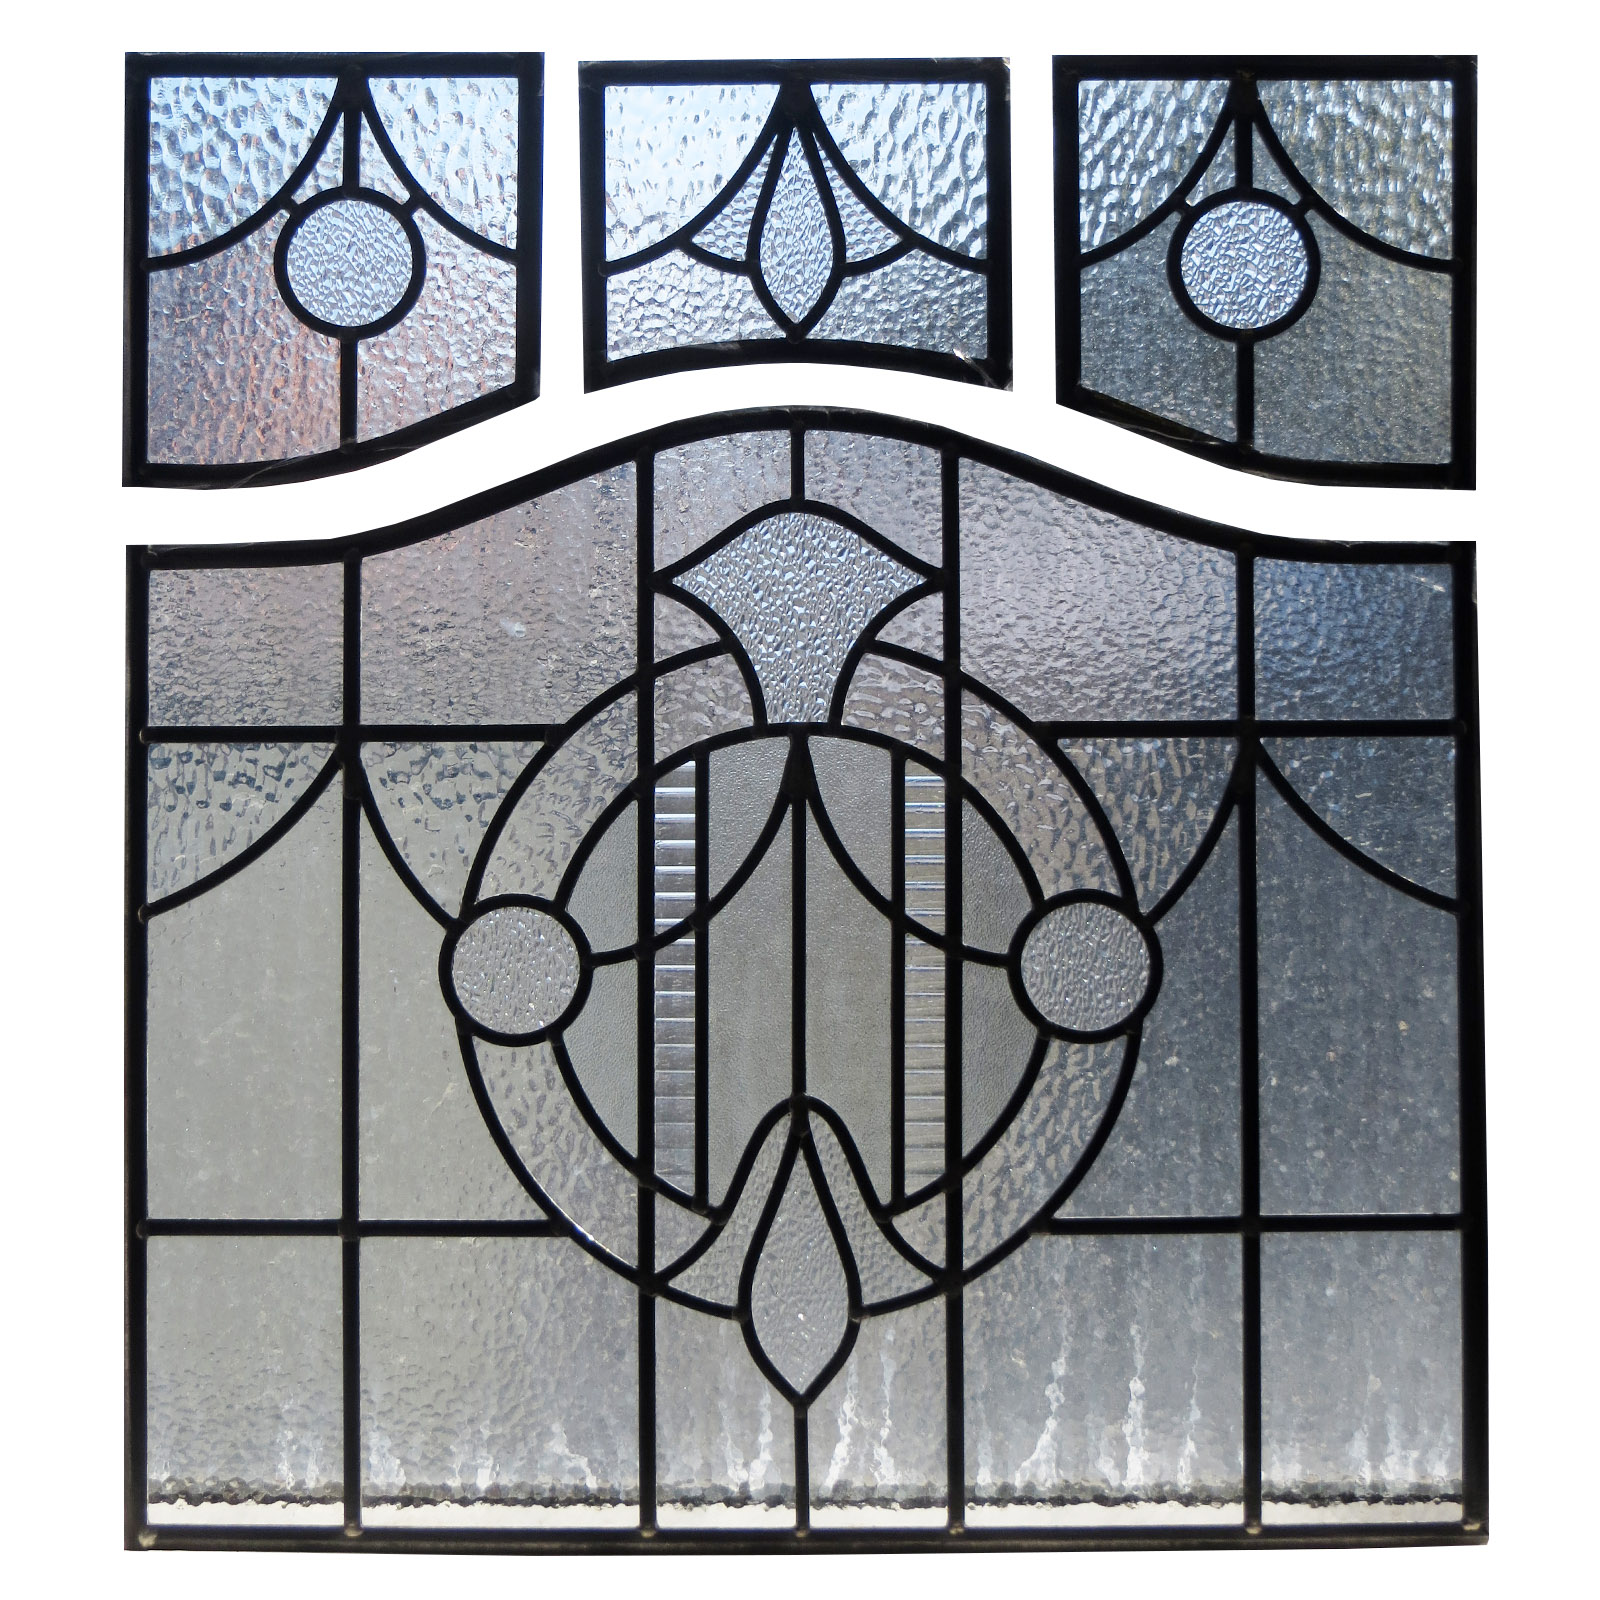 1930s art deco stained glass panels from period home style for 1930s stained glass window designs